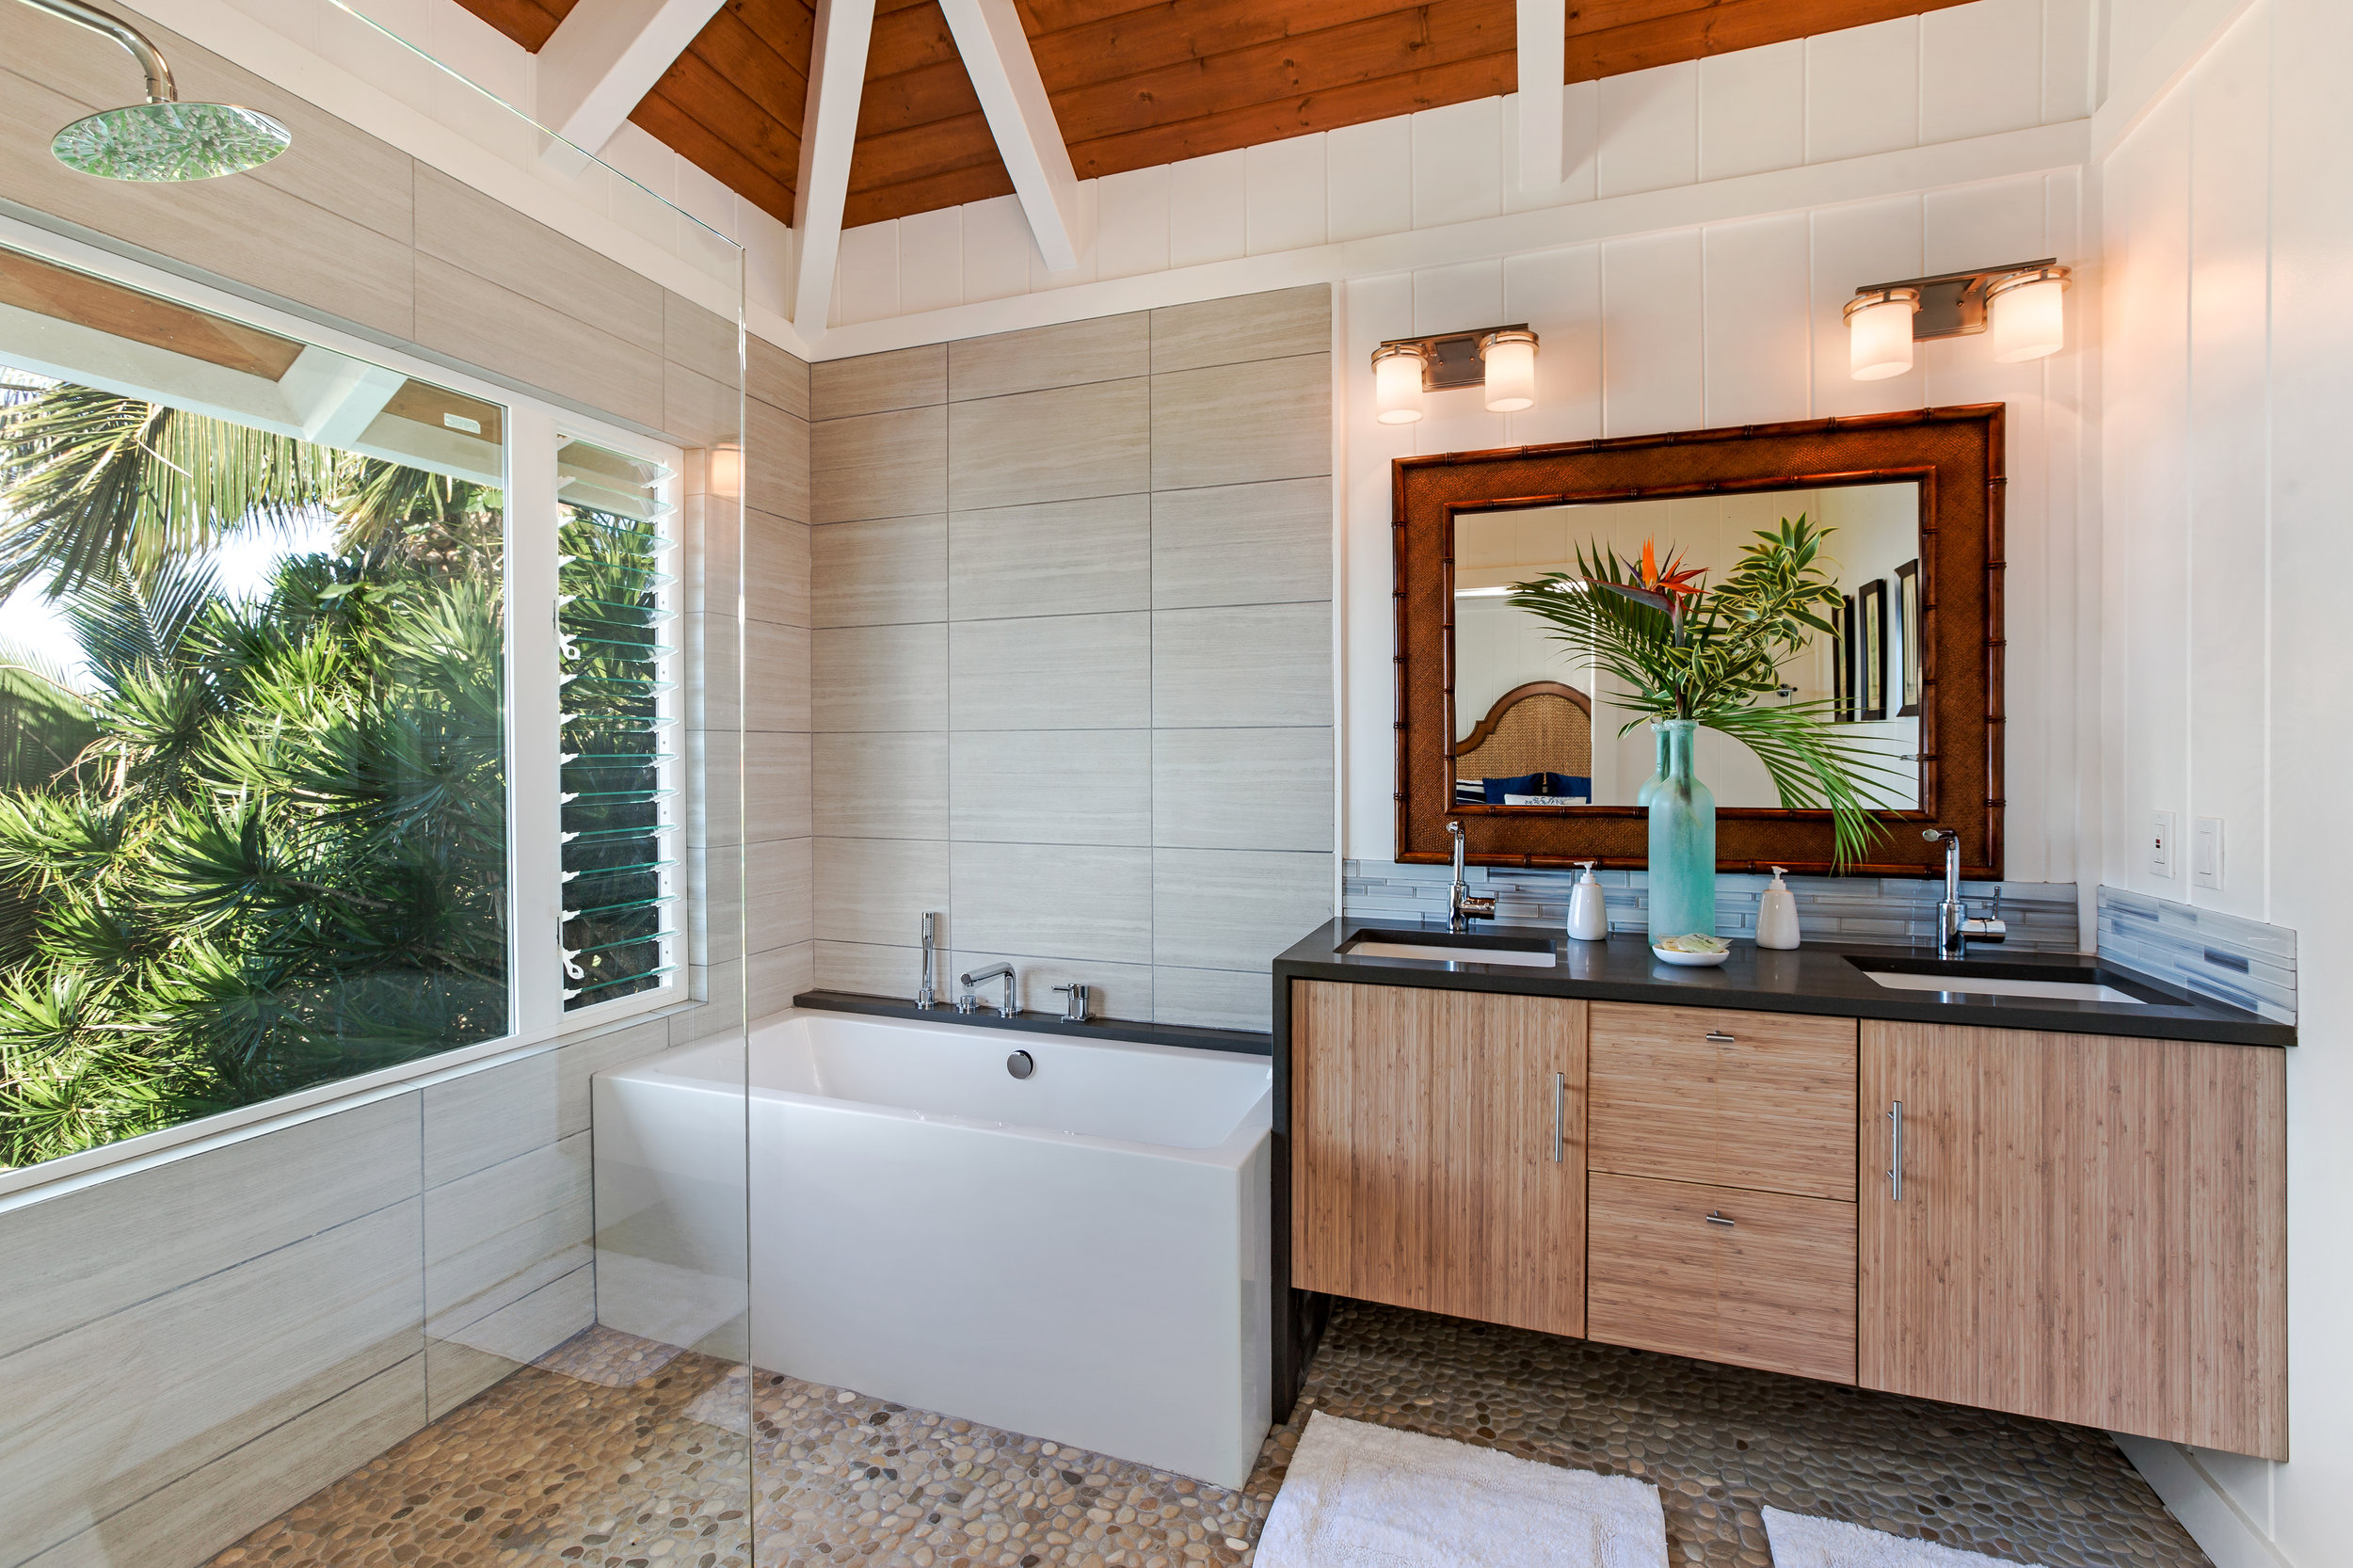 All bathrooms are newly renovated with high end features and fittings.  East oceanfront master ensuite features ocean view rain shower and soaker tub, and double hanging solid bamboo vanity with waterfall edge.